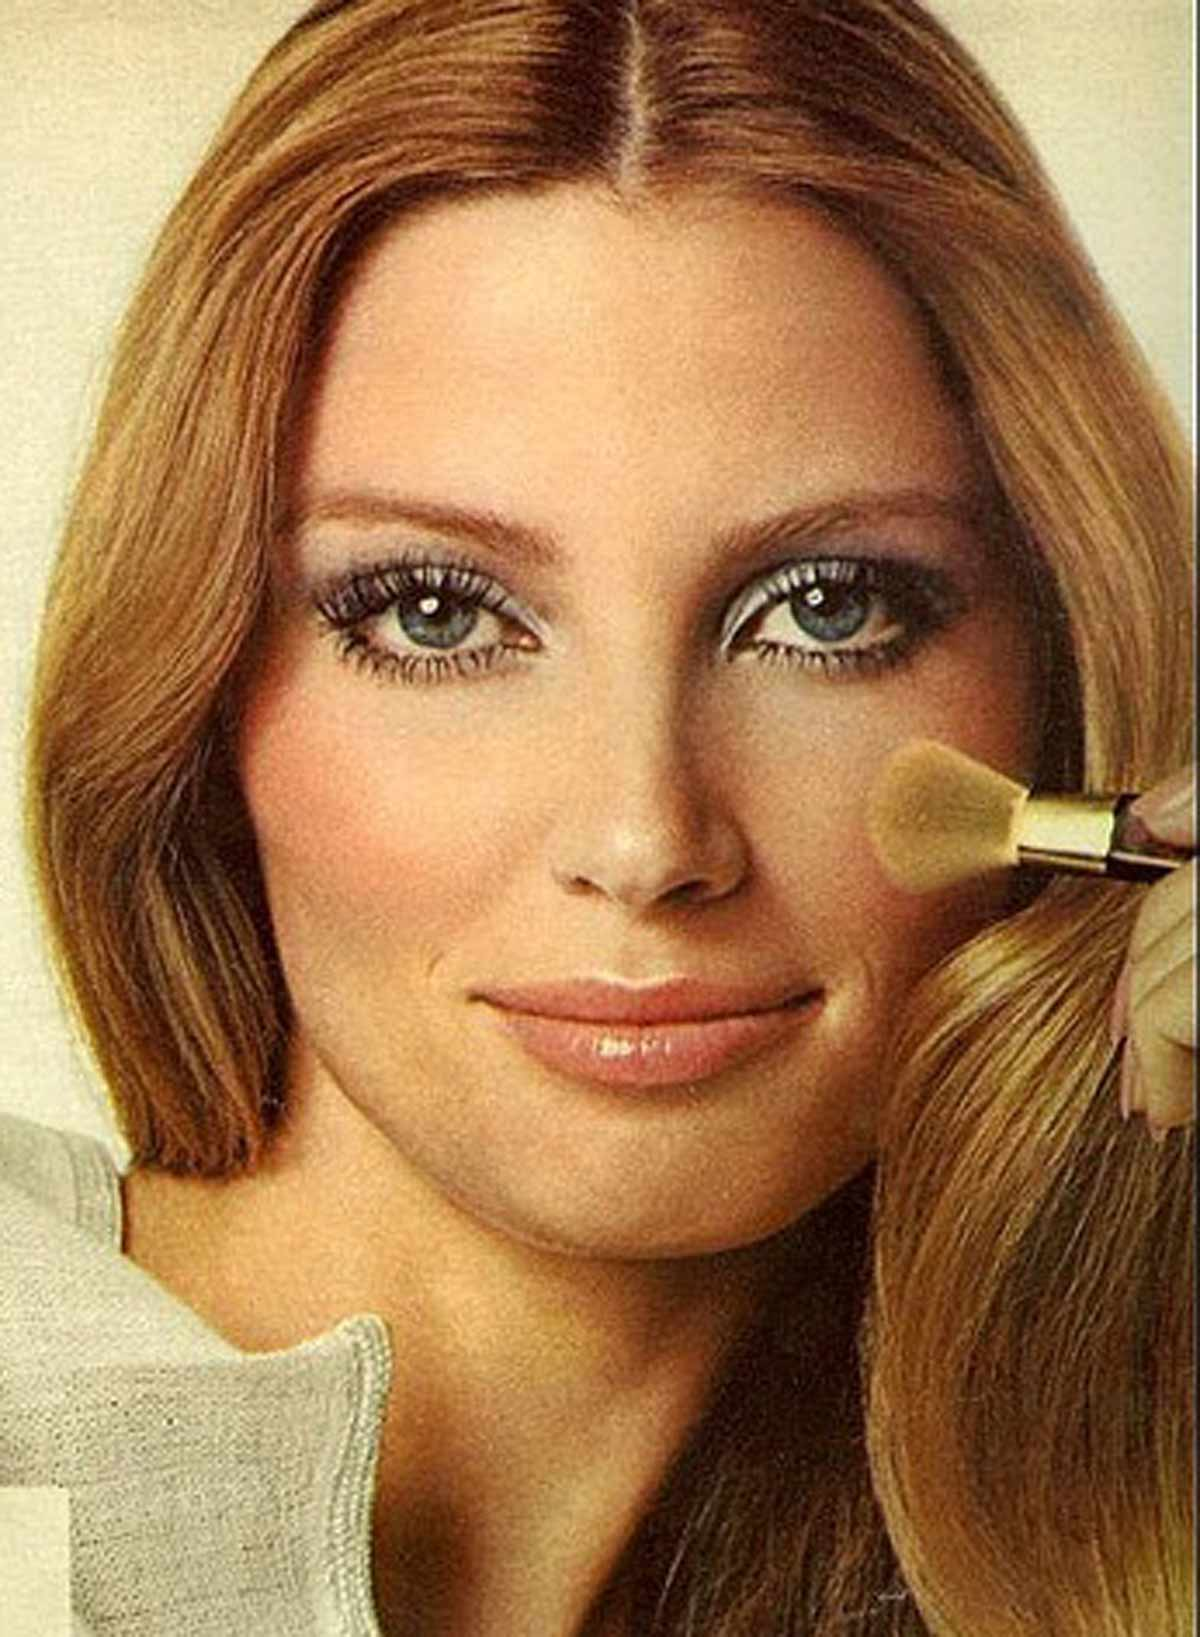 Wondrous The 1970S Makeup Look 5 Key Points Glamourdaze Hairstyle Inspiration Daily Dogsangcom